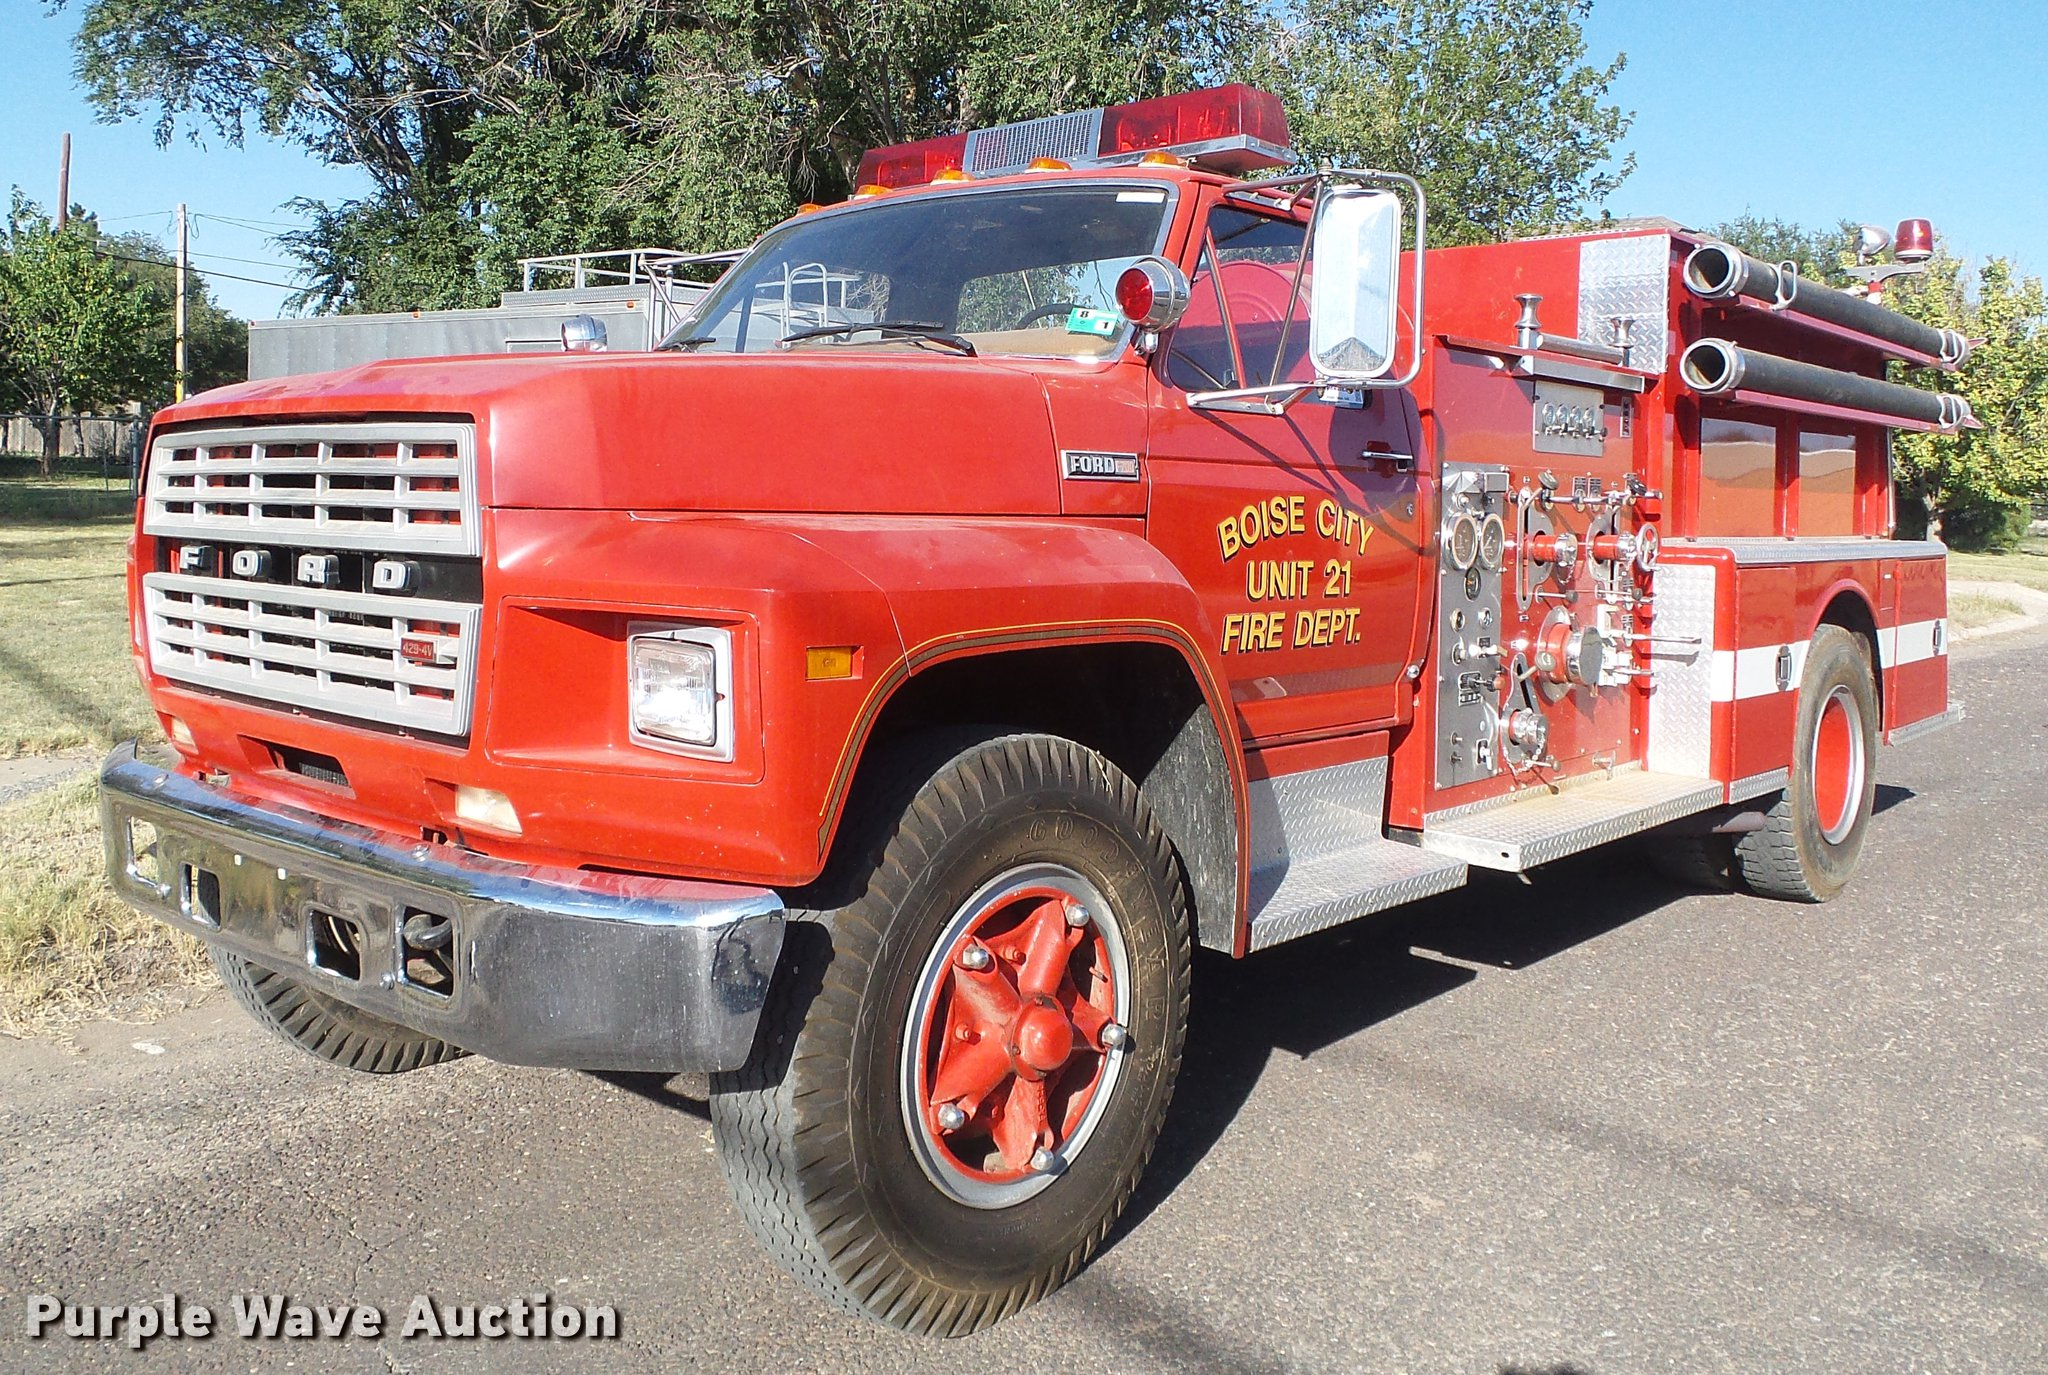 85 Ford F700 Shop Manual Mini R53 Coupe Cooper S Ece Engine Electrical System Various Wiring Array 1980 Fire Truck Item Df2768 Sold October 23 G Rh Purplewave Com